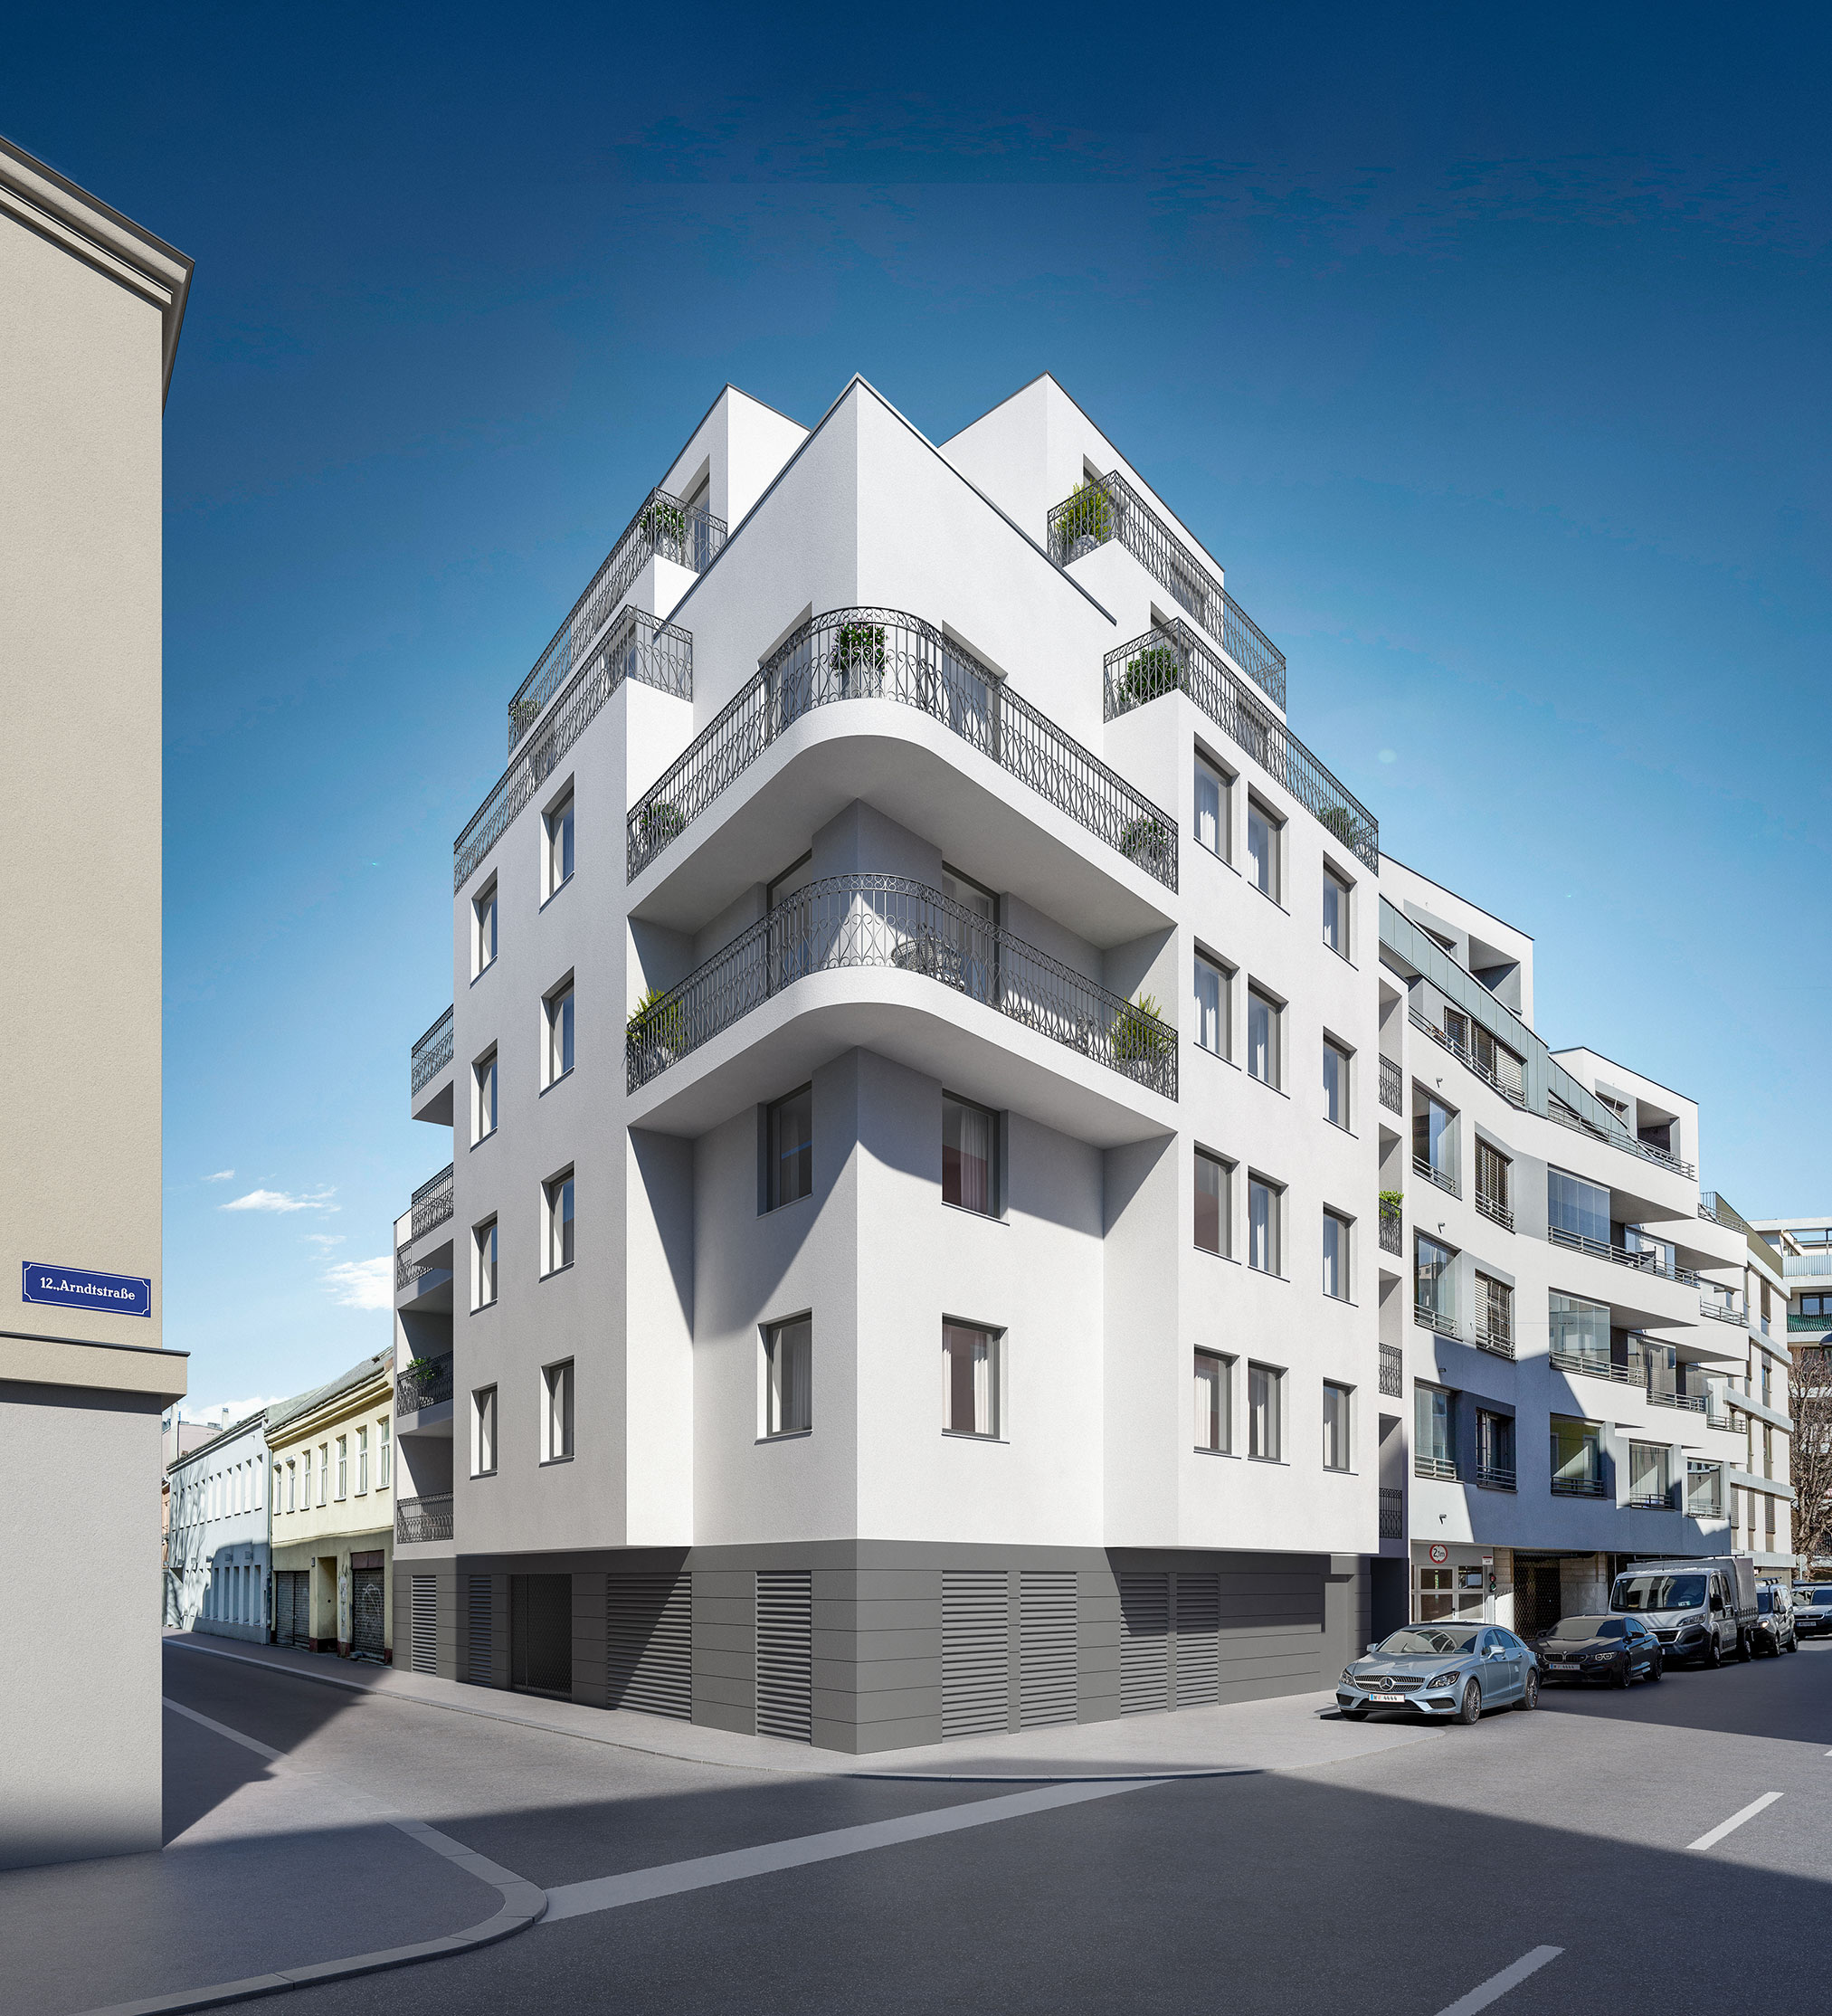 TH Real Estate Arndtstrasse Var5